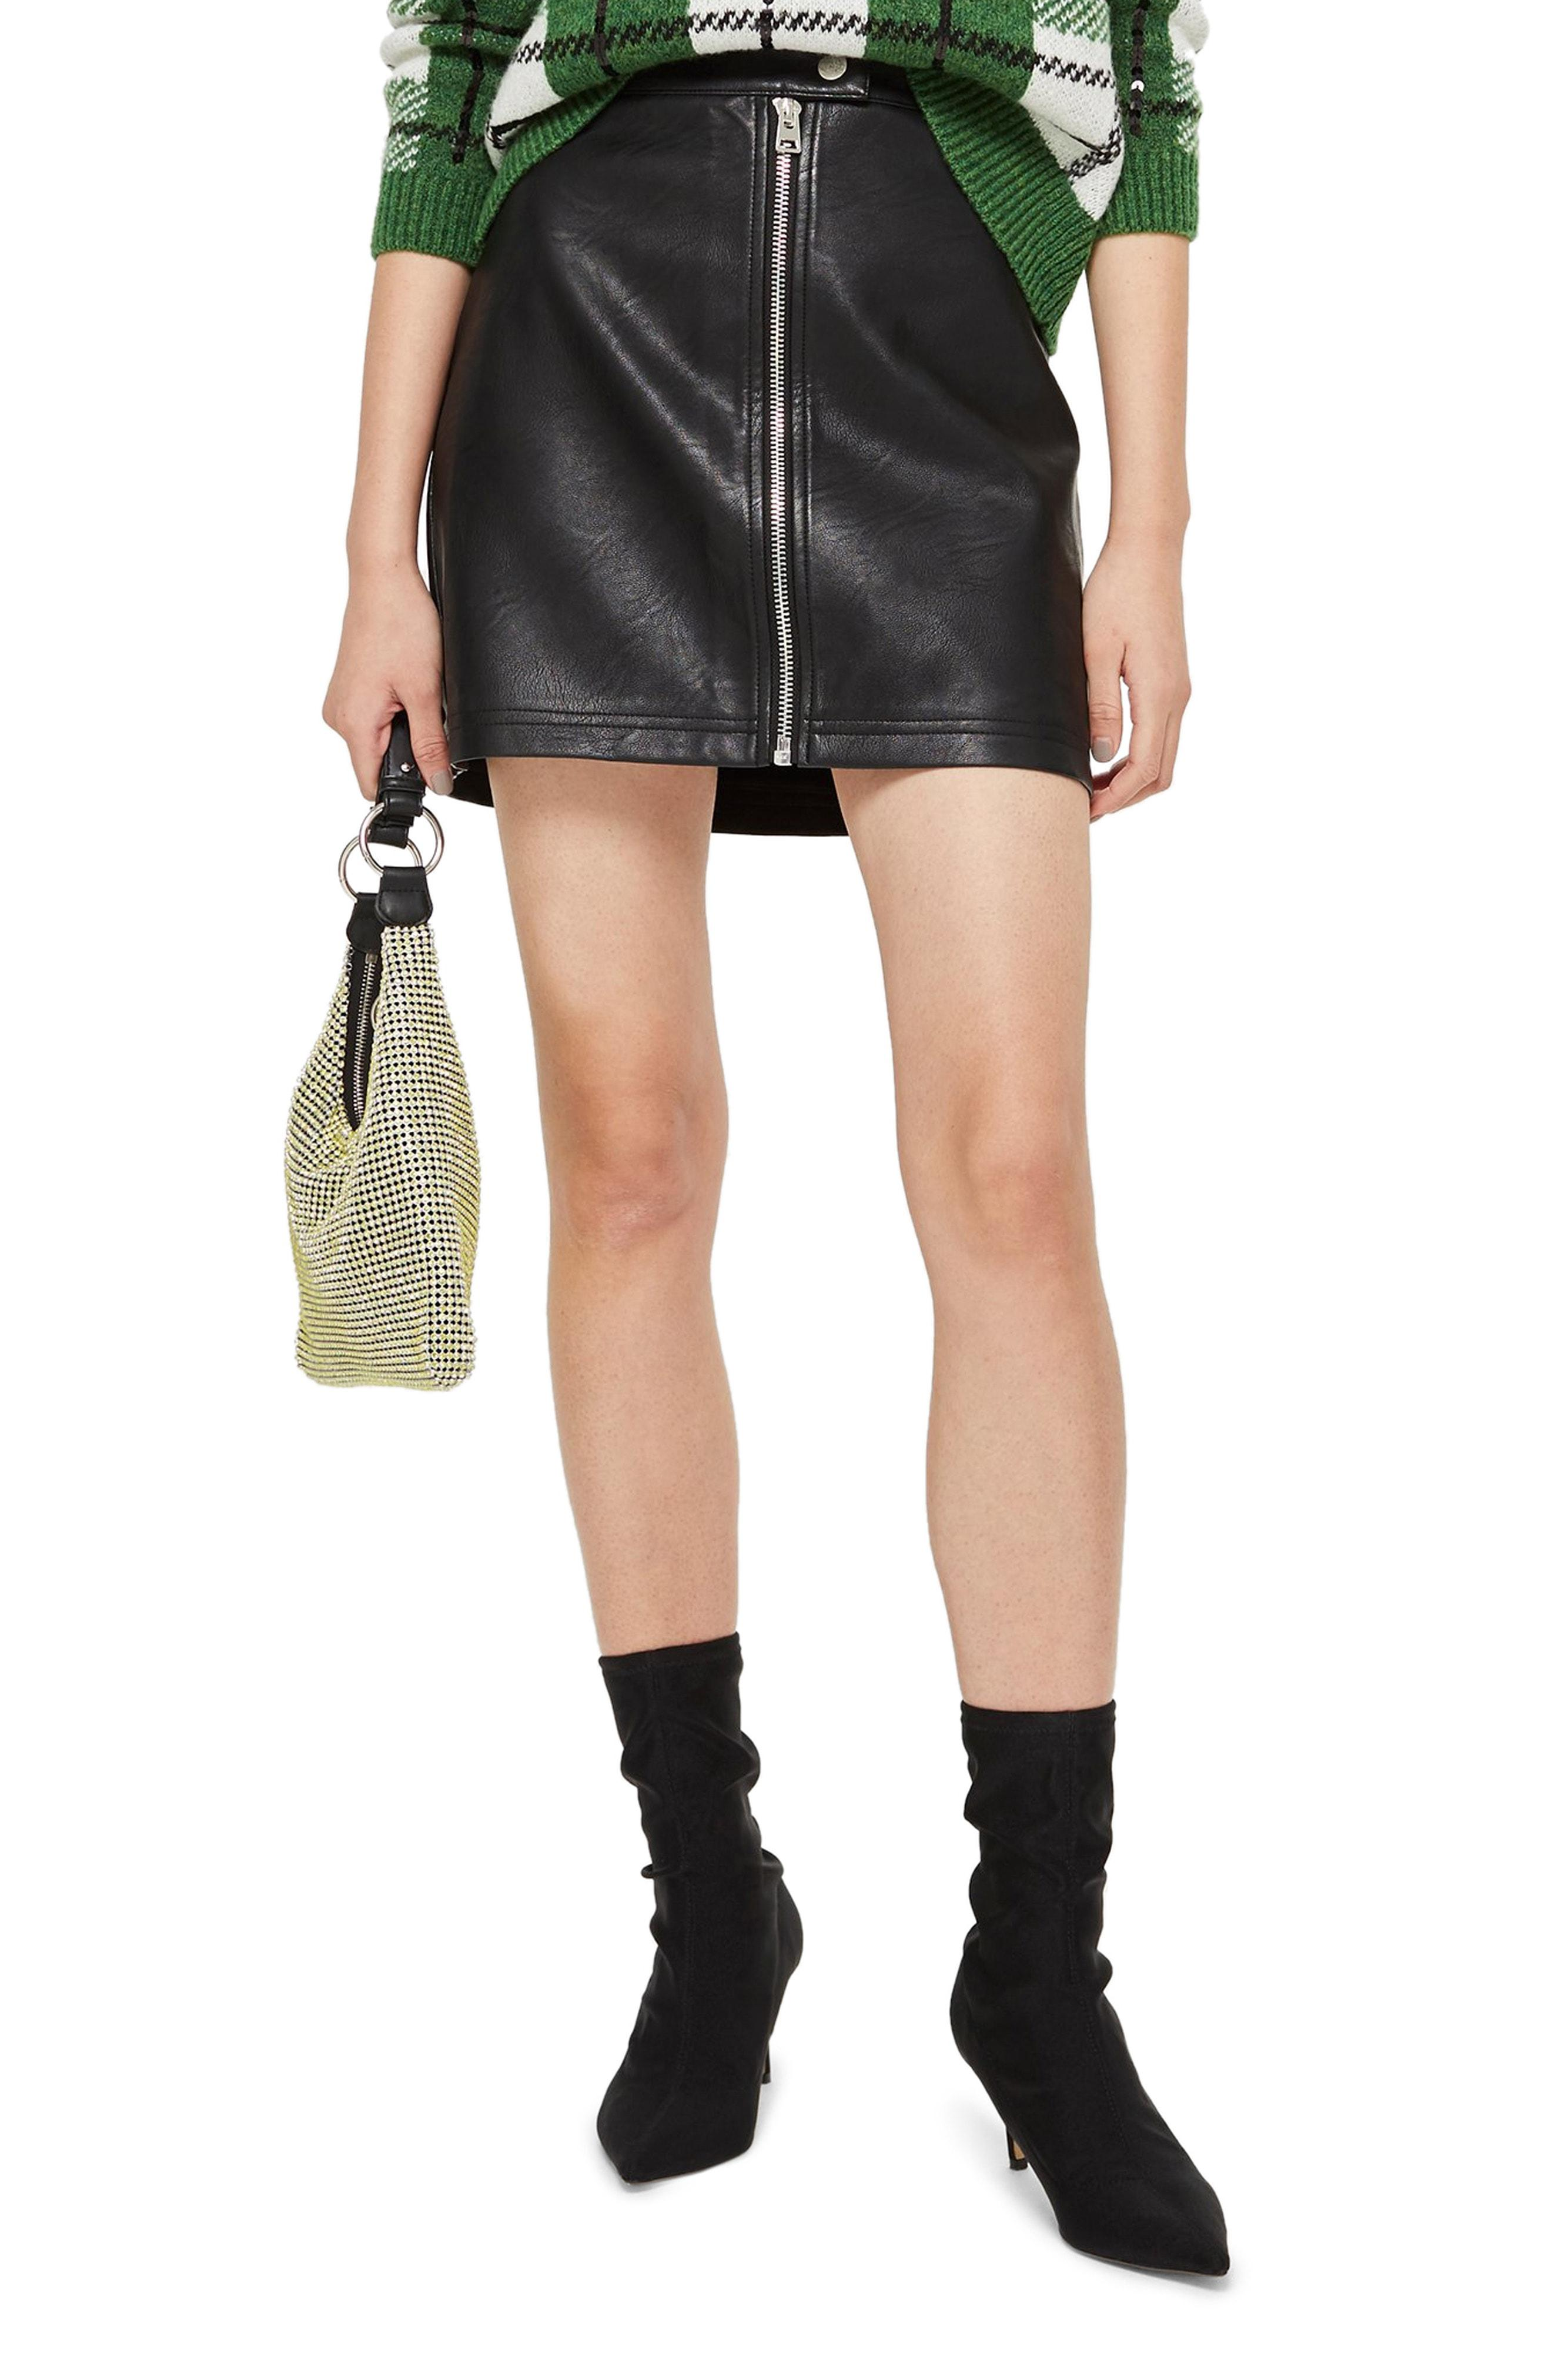 ad1ce1db8b Lyst - TOPSHOP Penelope Faux Leather Miniskirt in Black